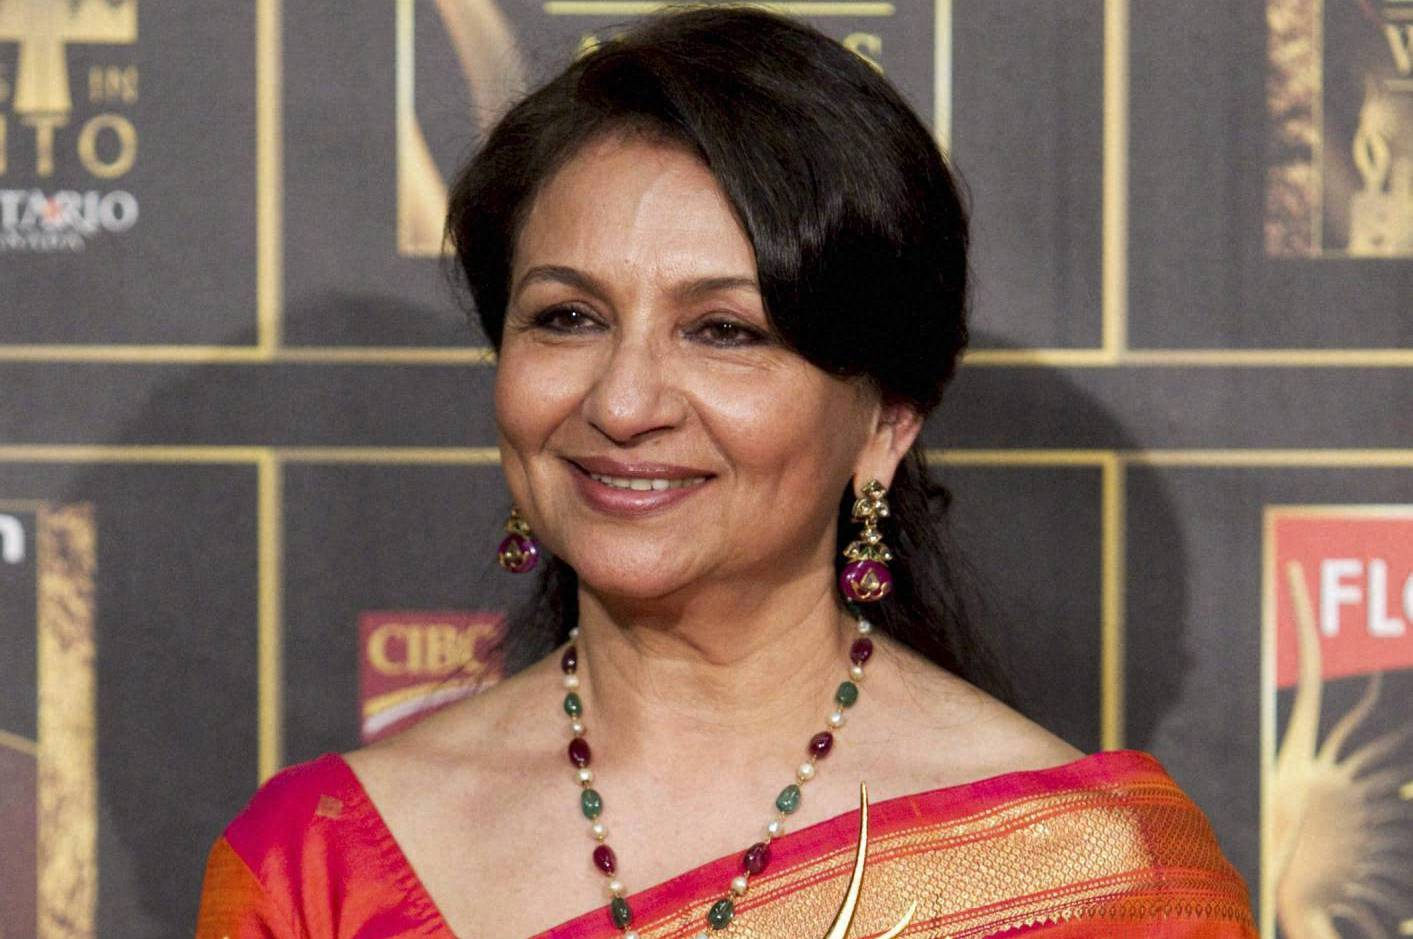 sharmila Tagore in an event